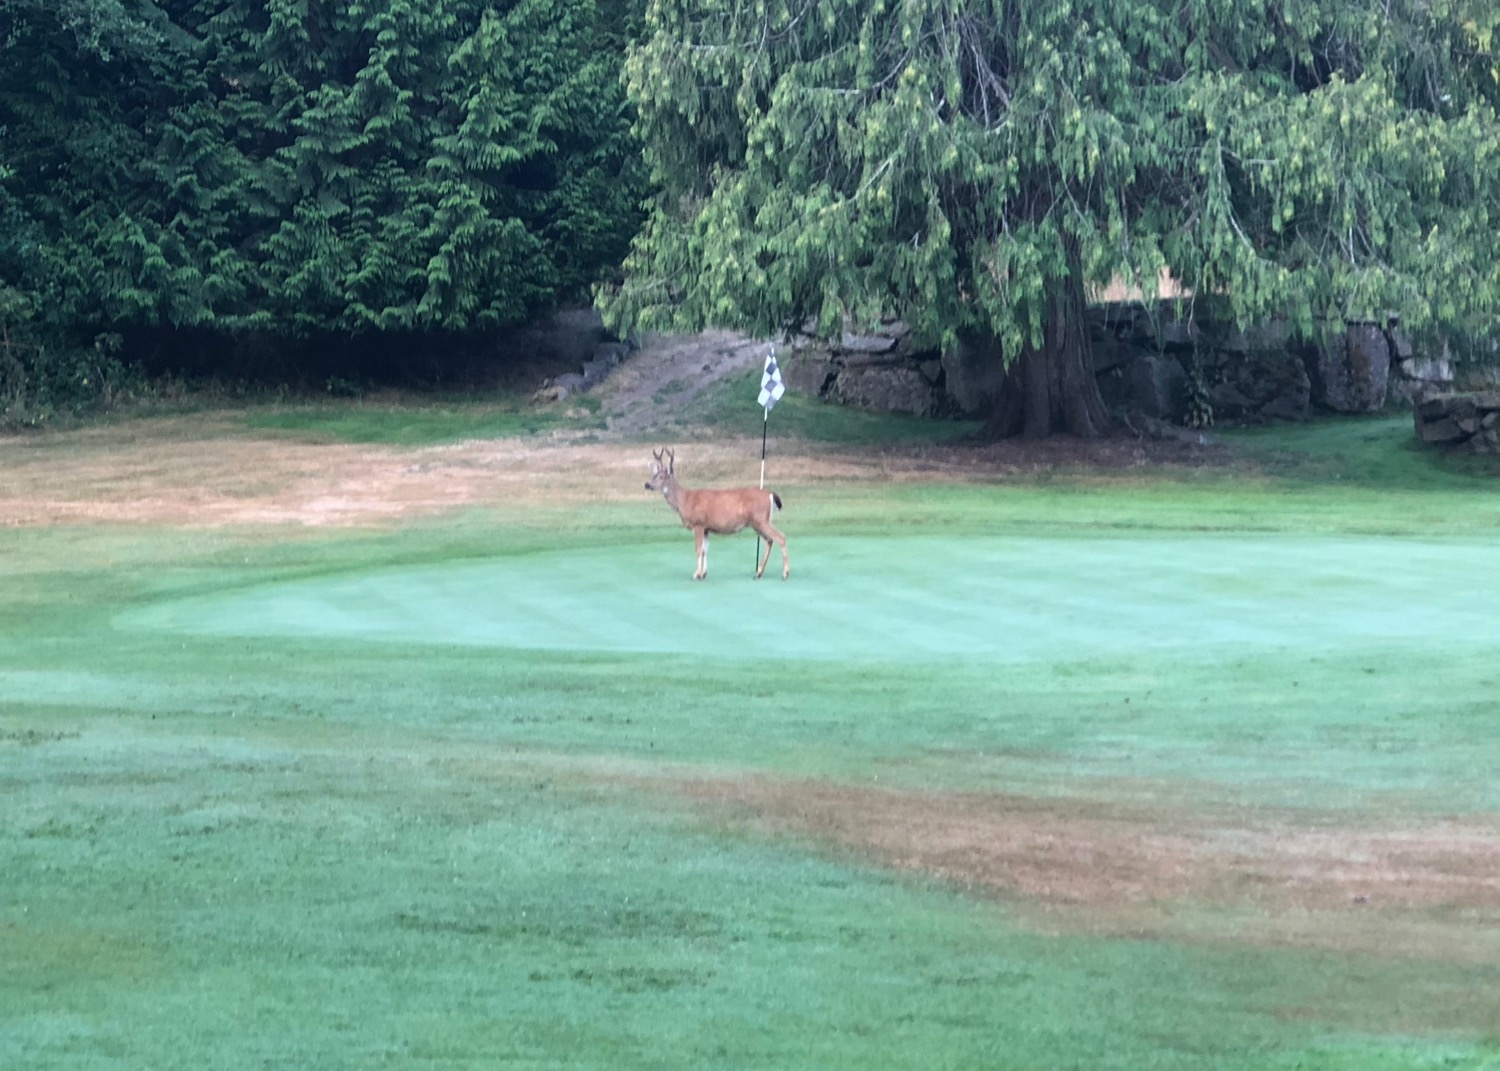 I was playing the second hole, and the buck from the parking lot ran straight at me! He got within about 20' before veering off and wandering over to the 5th green to hang out.